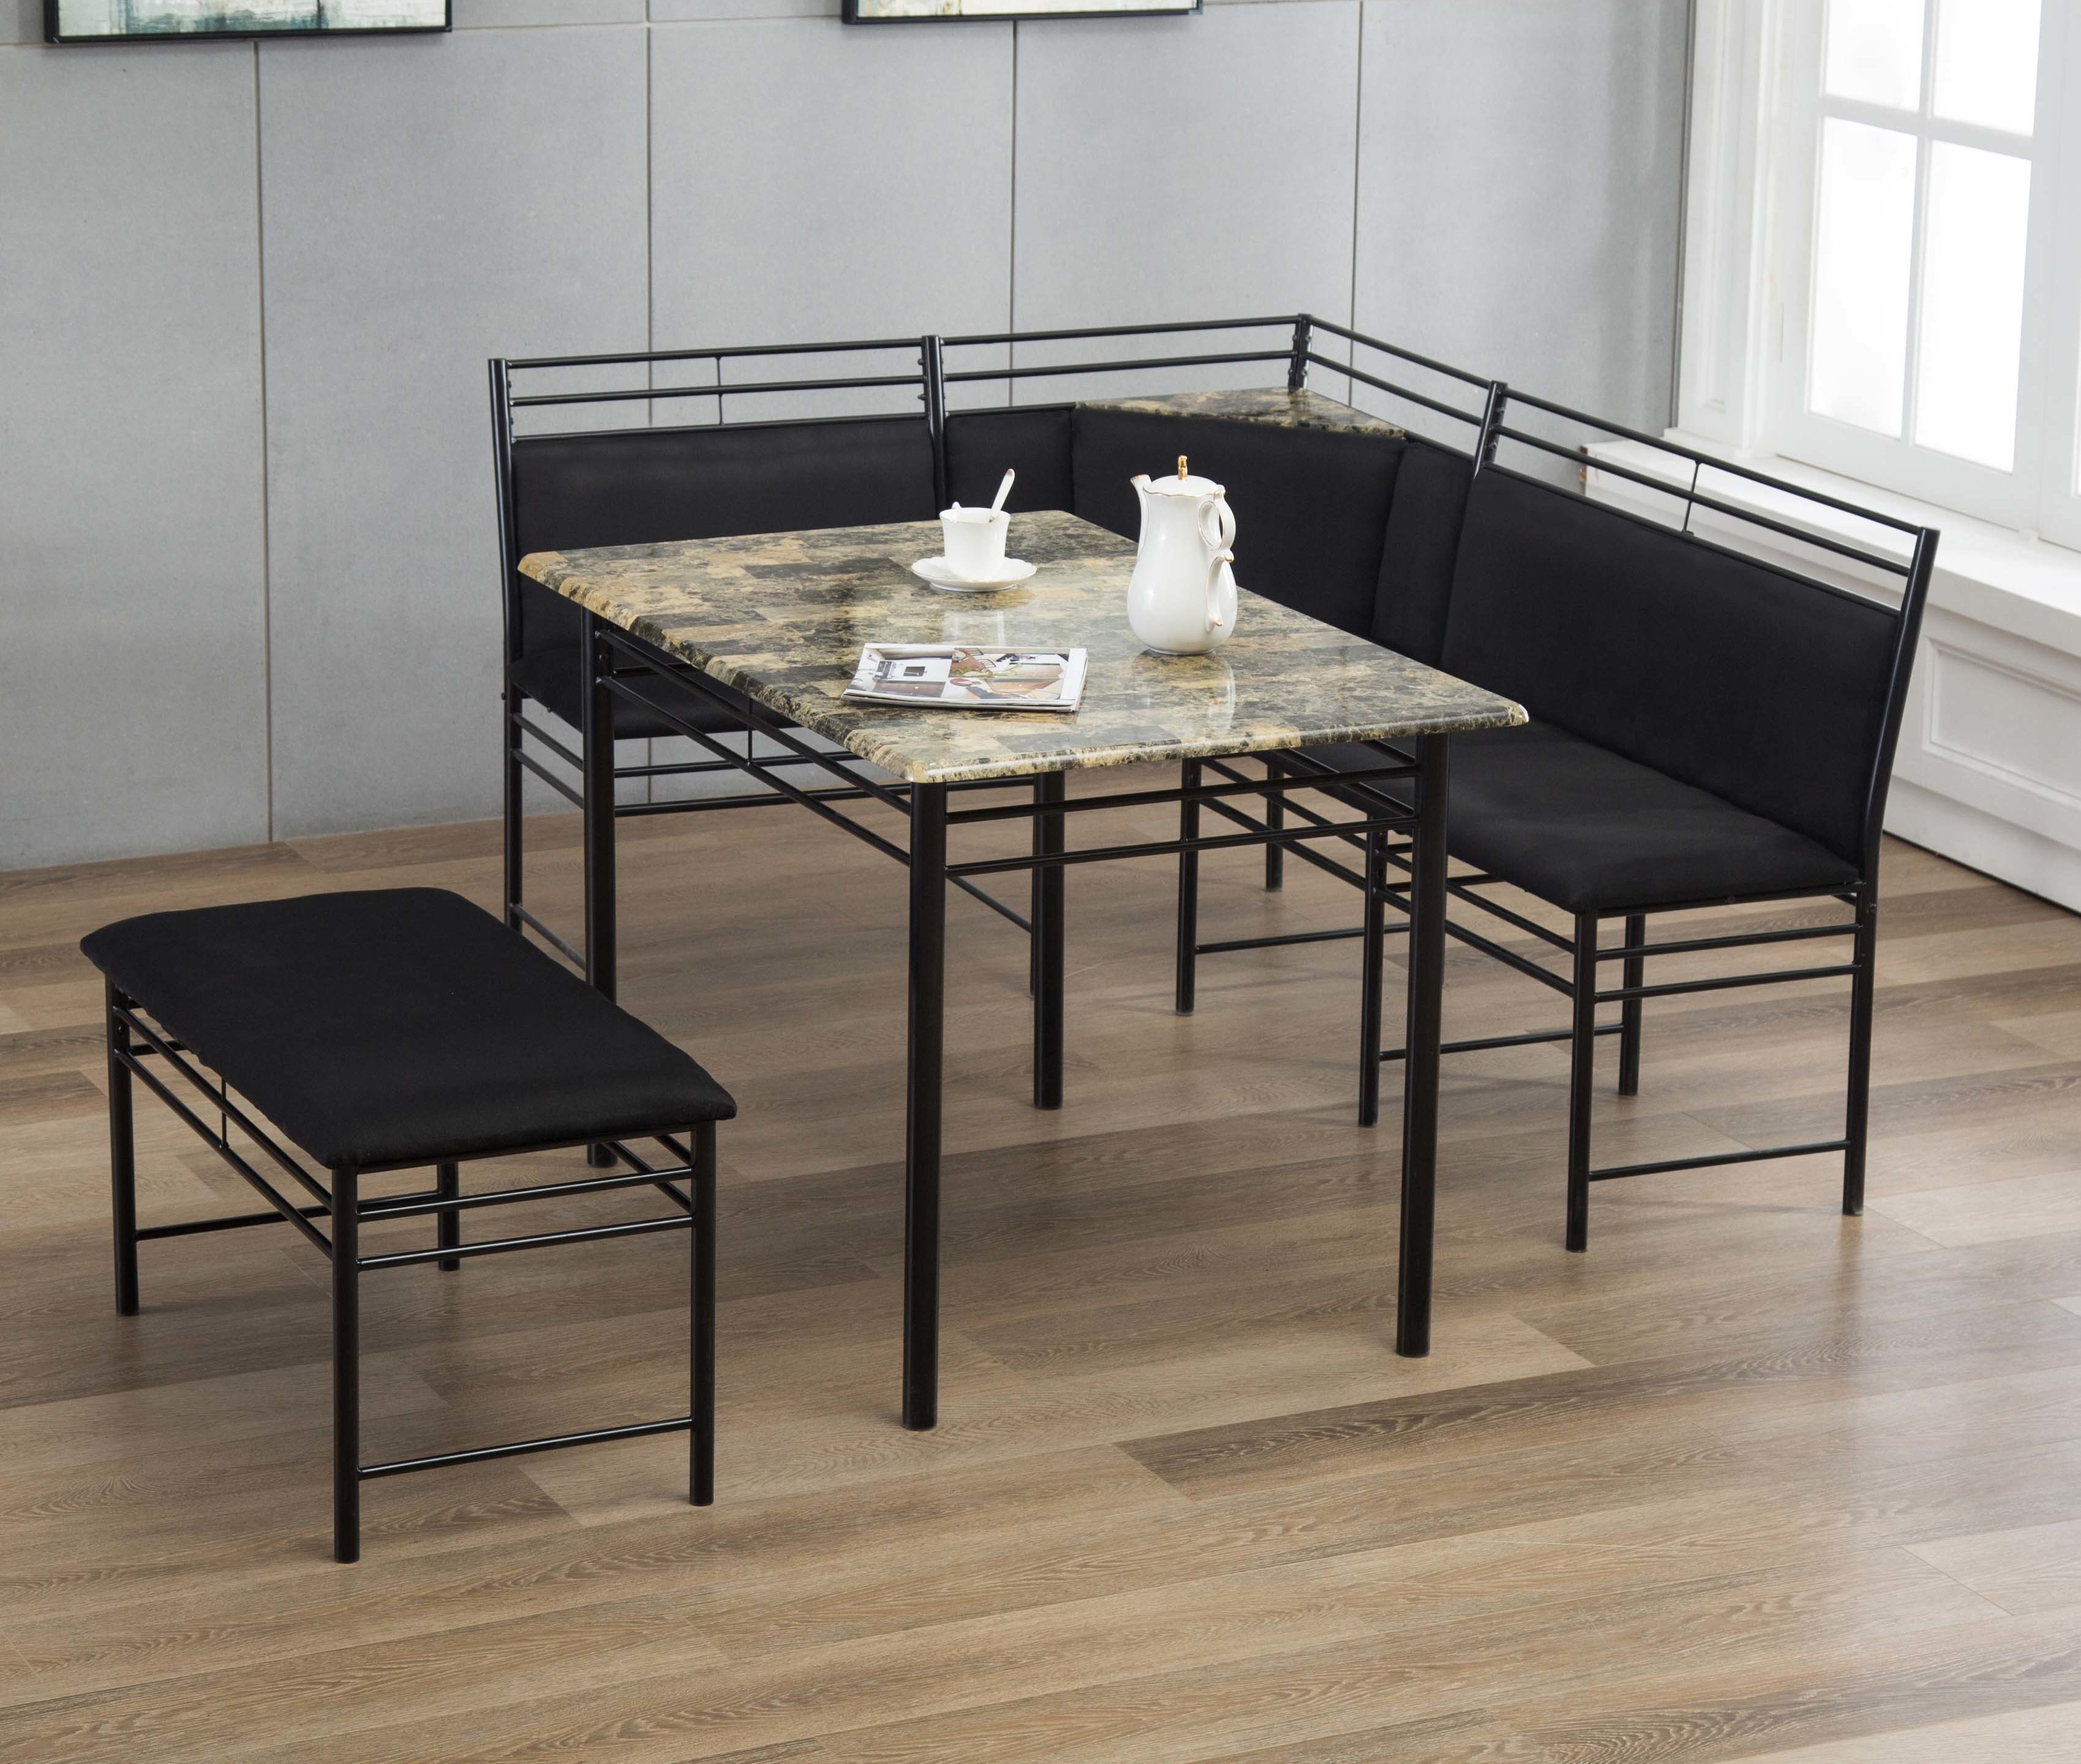 Inspiration about Winston Porter Tyrell 3 Piece Breakfast Nook Dining Set & Reviews Within Fashionable 3 Piece Breakfast Nook Dinning Set (#1 of 20)